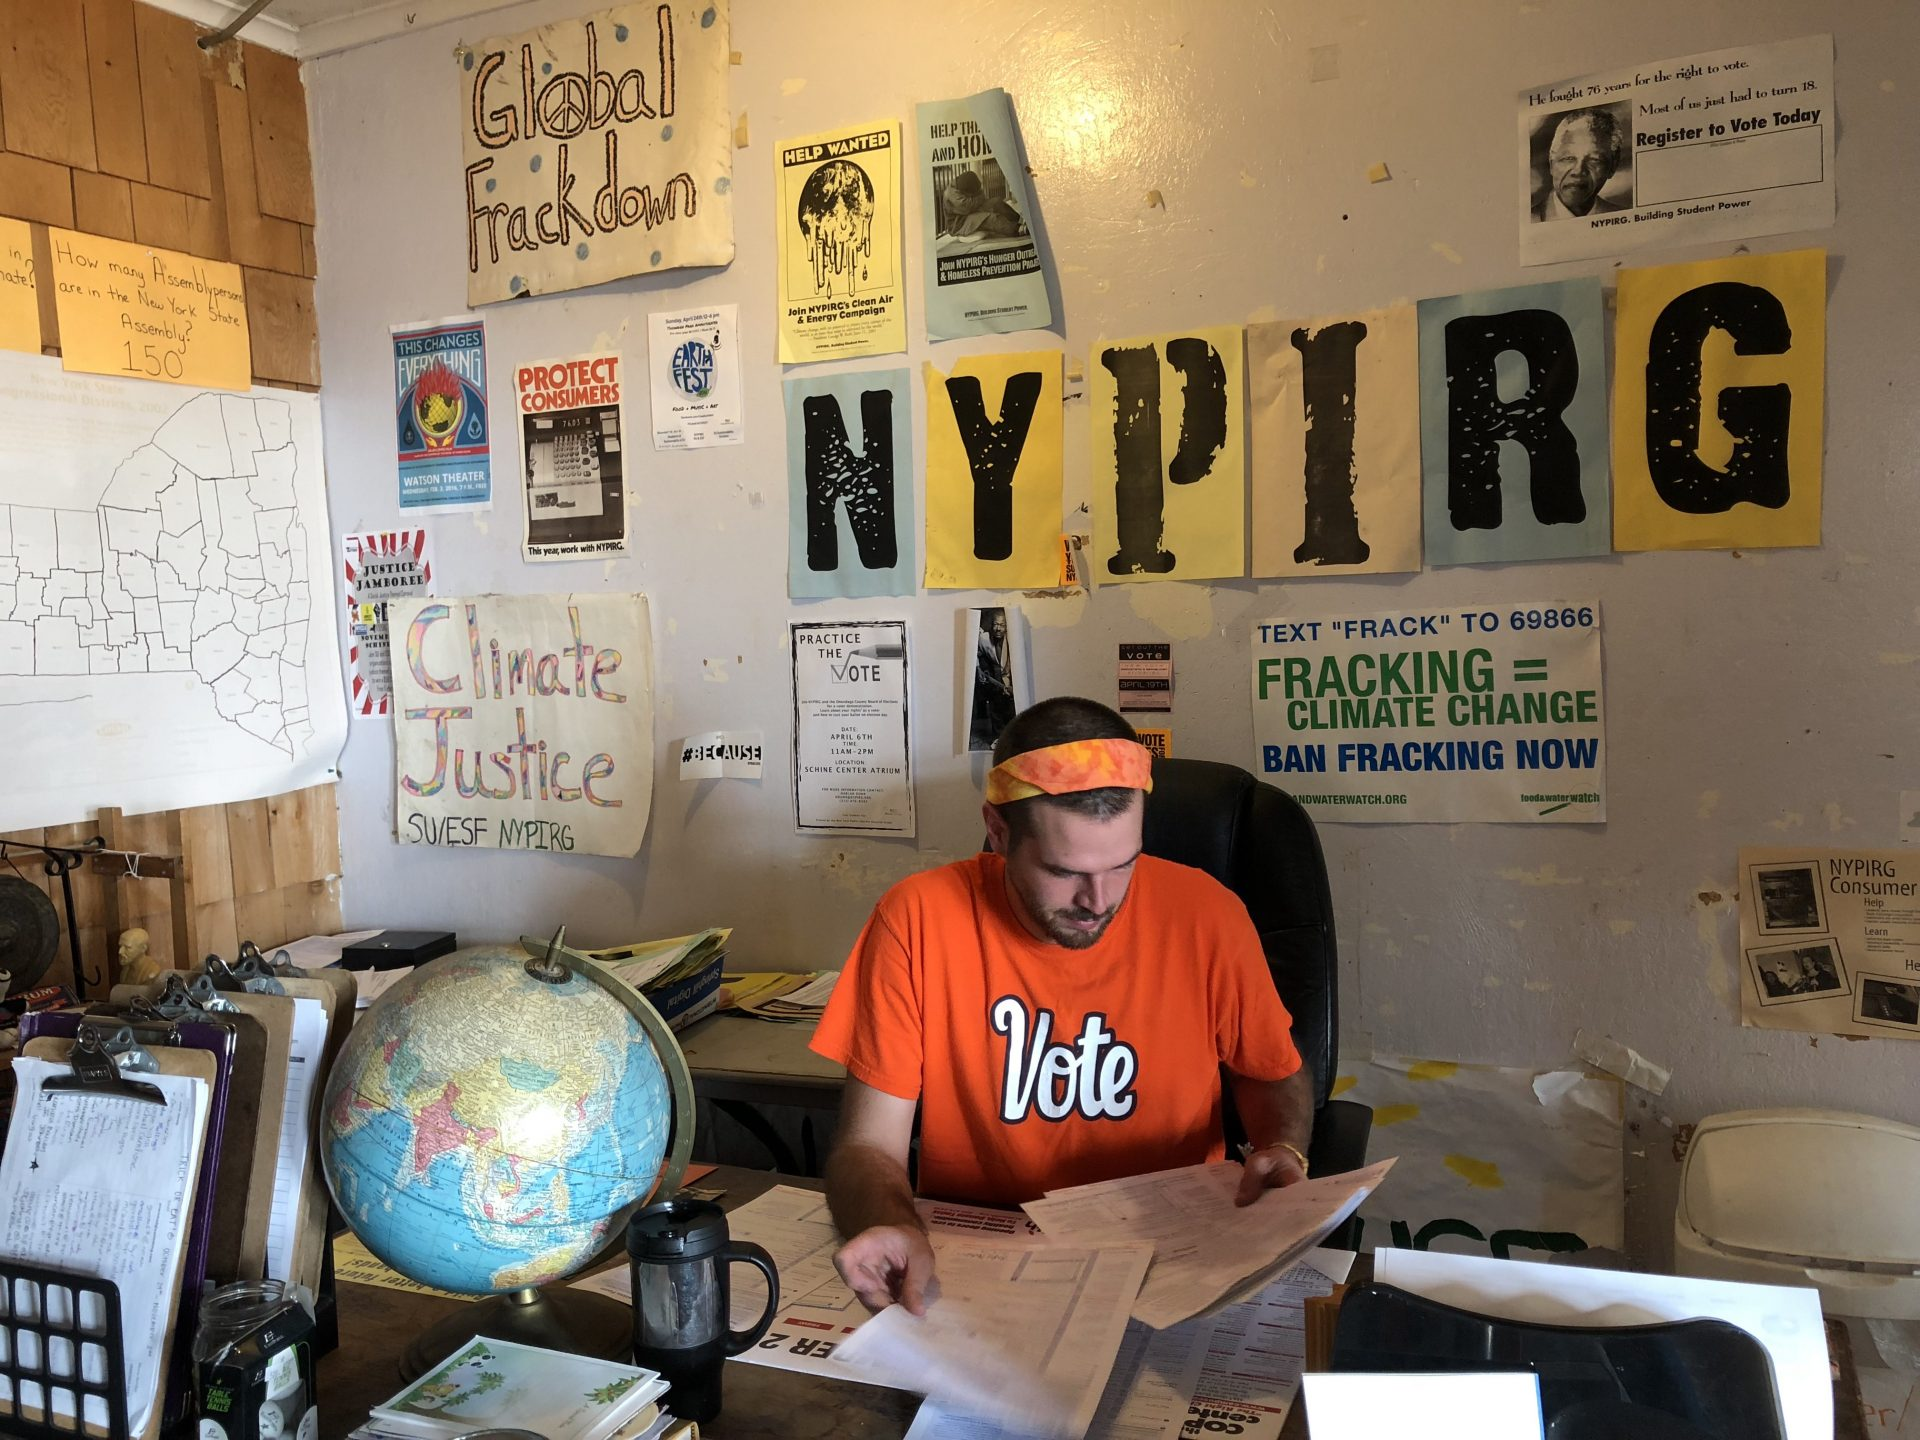 Man sitting at a desk reading voter registration forms